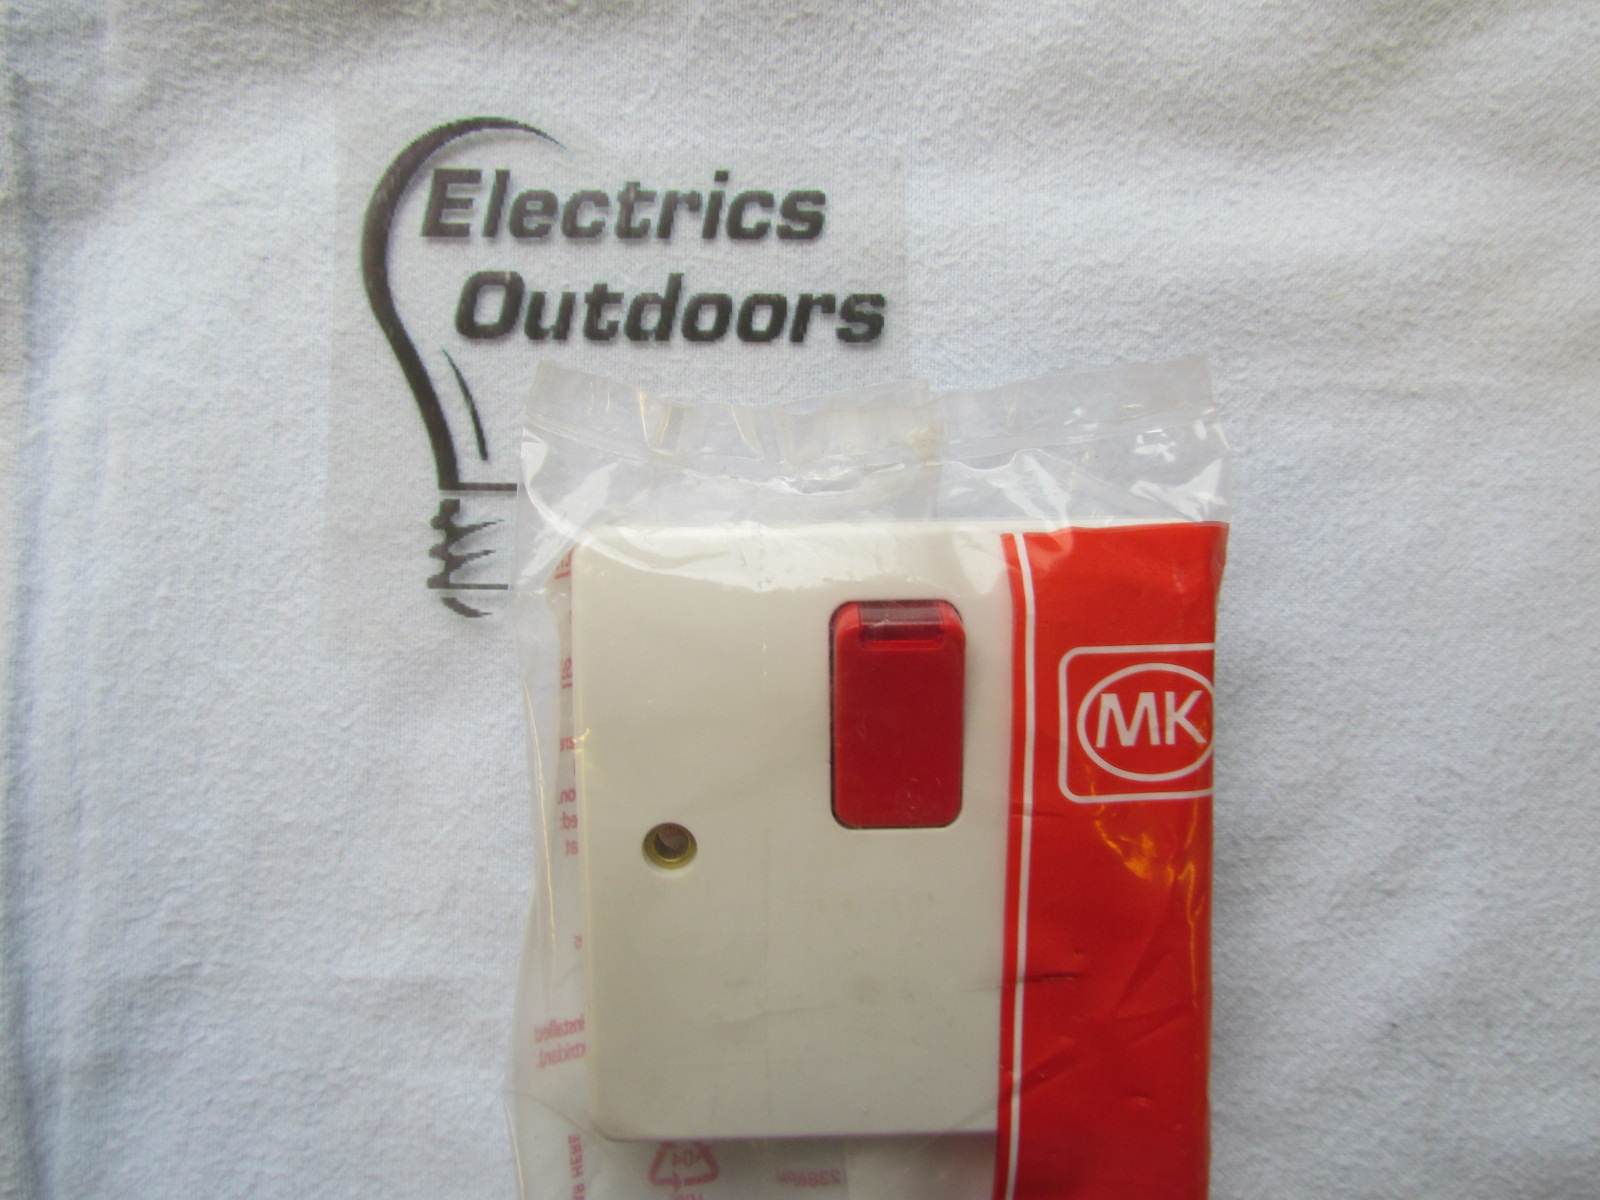 MK 20 AMP DOUBLE POLE RED SWITCH BOTTOM FLEX WITH NEON K5423D1 W